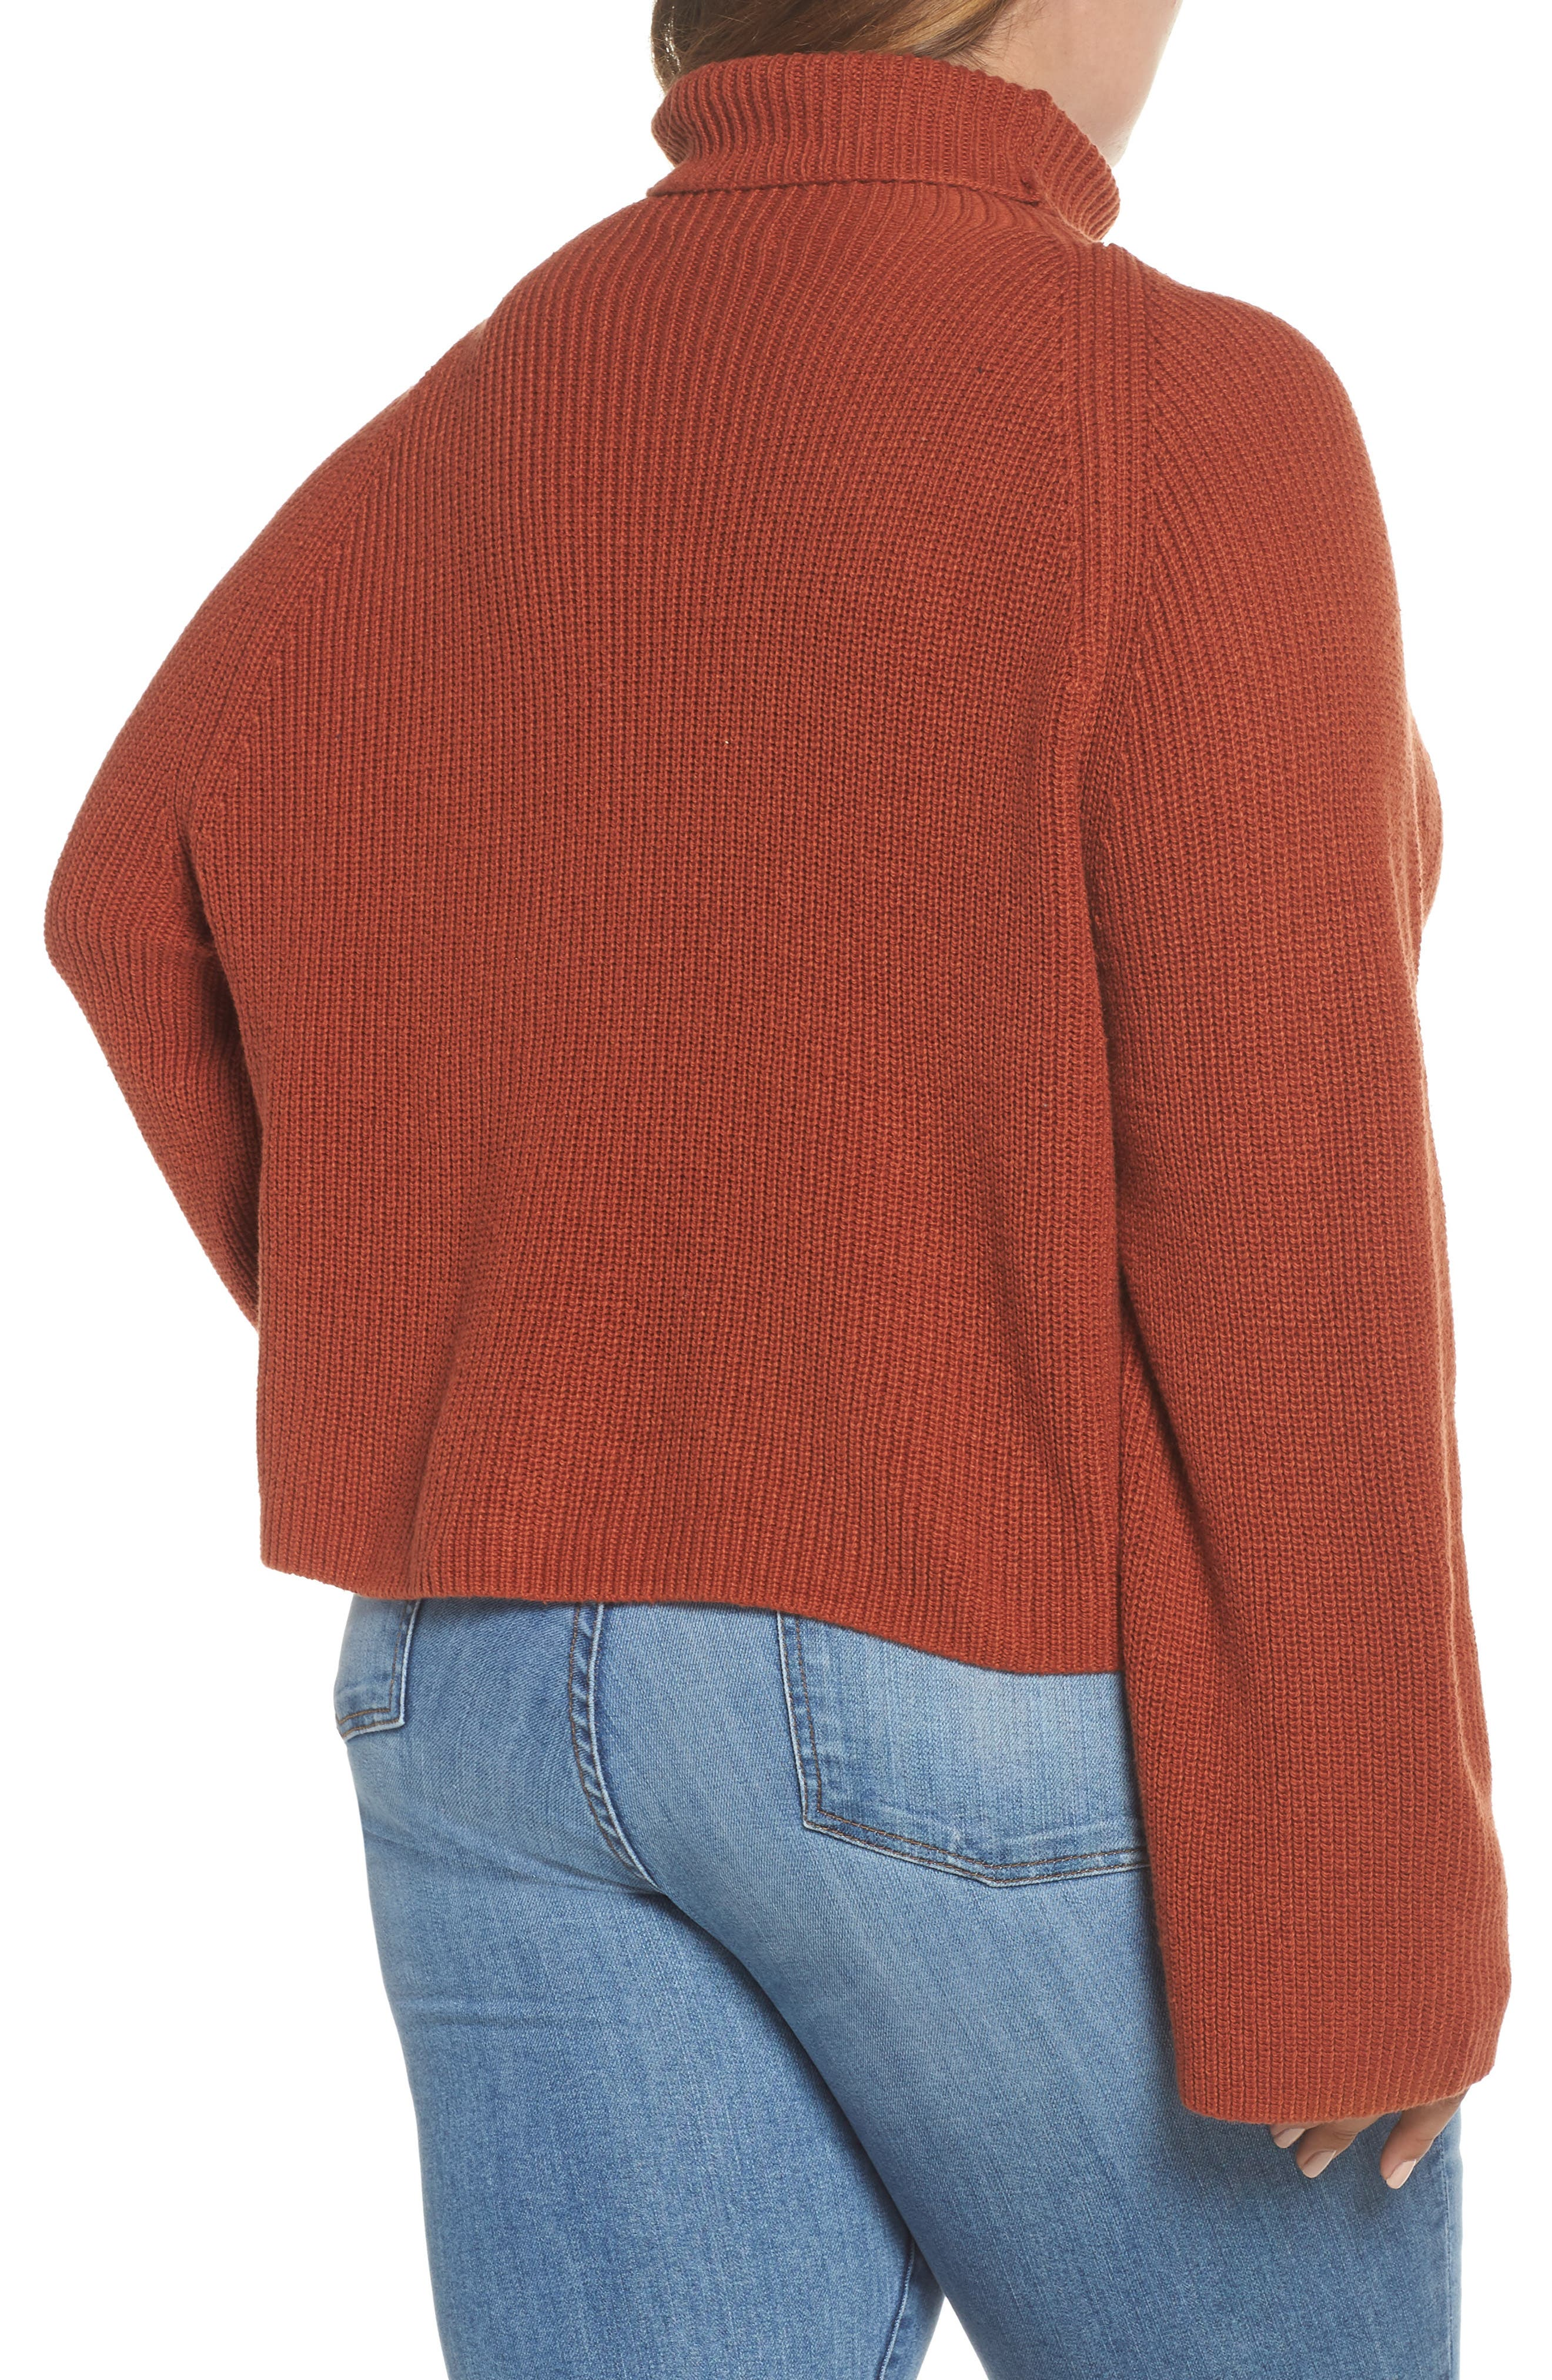 Transfer Stitch Turtleneck Sweater,                             Alternate thumbnail 8, color,                             BROWN SPICE